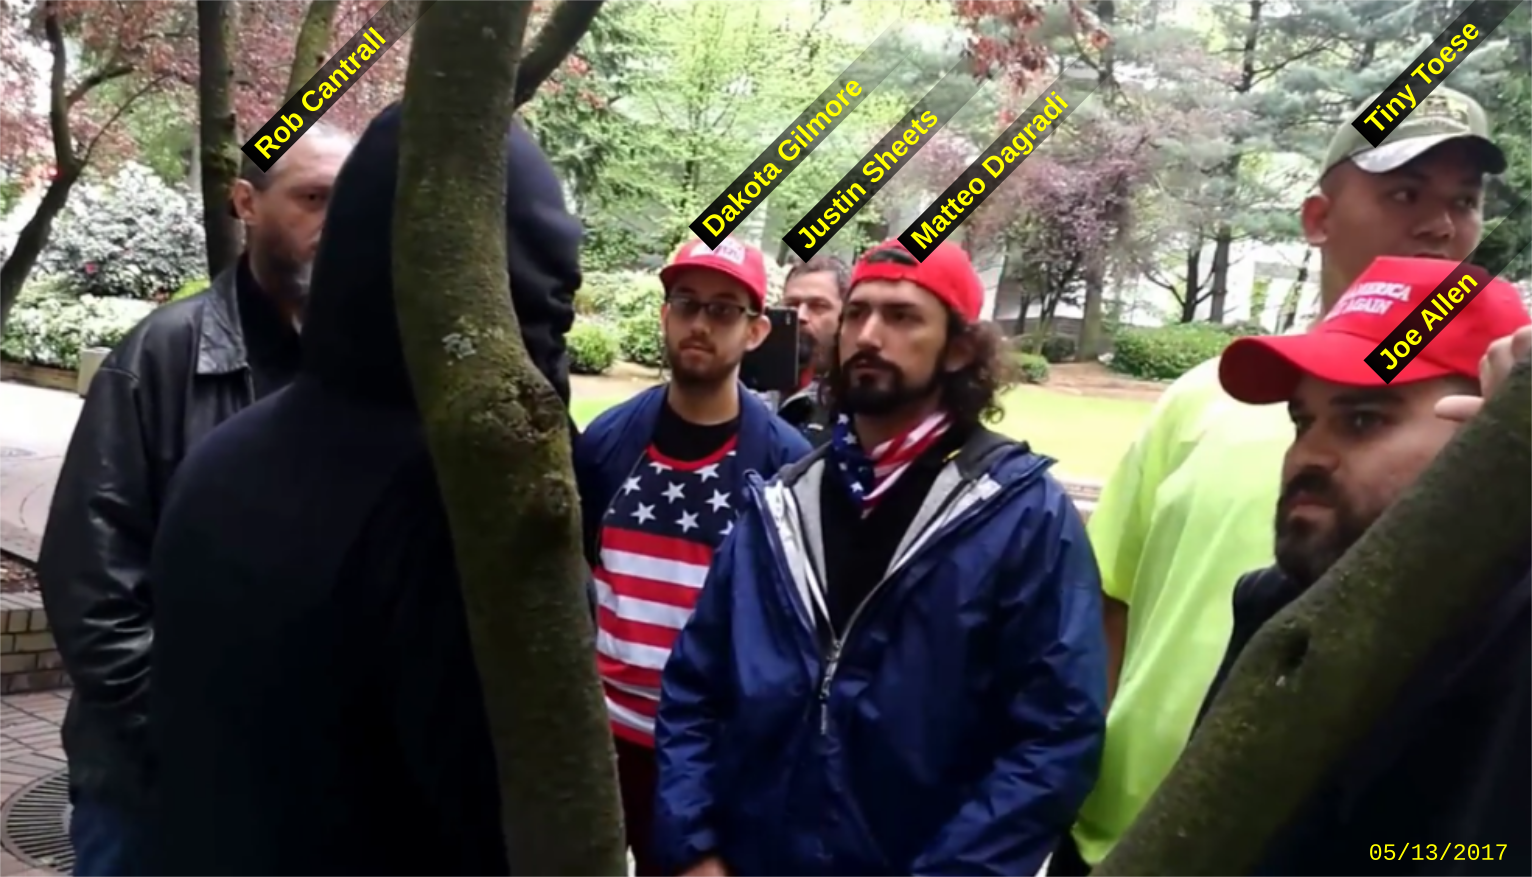 Rob Cantrall and other Proud Boys planning to disrupt a police accountability rally